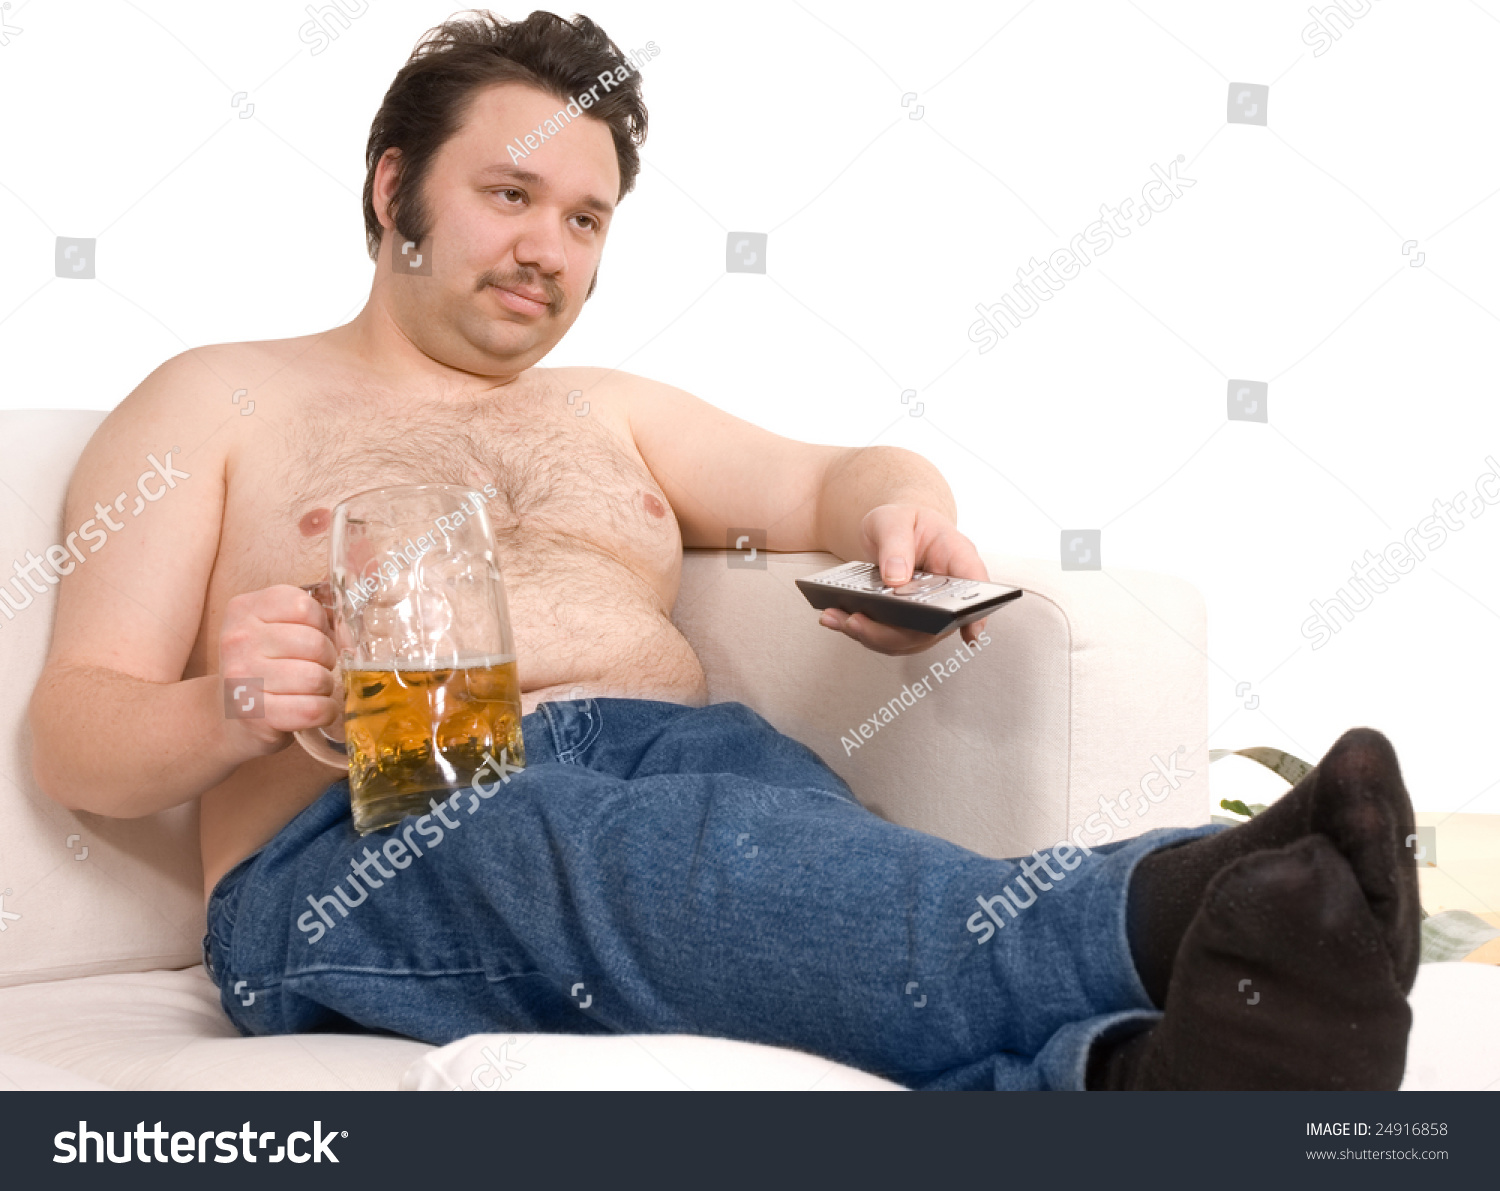 Royalty-free Overweight man sitting on the couch… #24916858 Stock ...